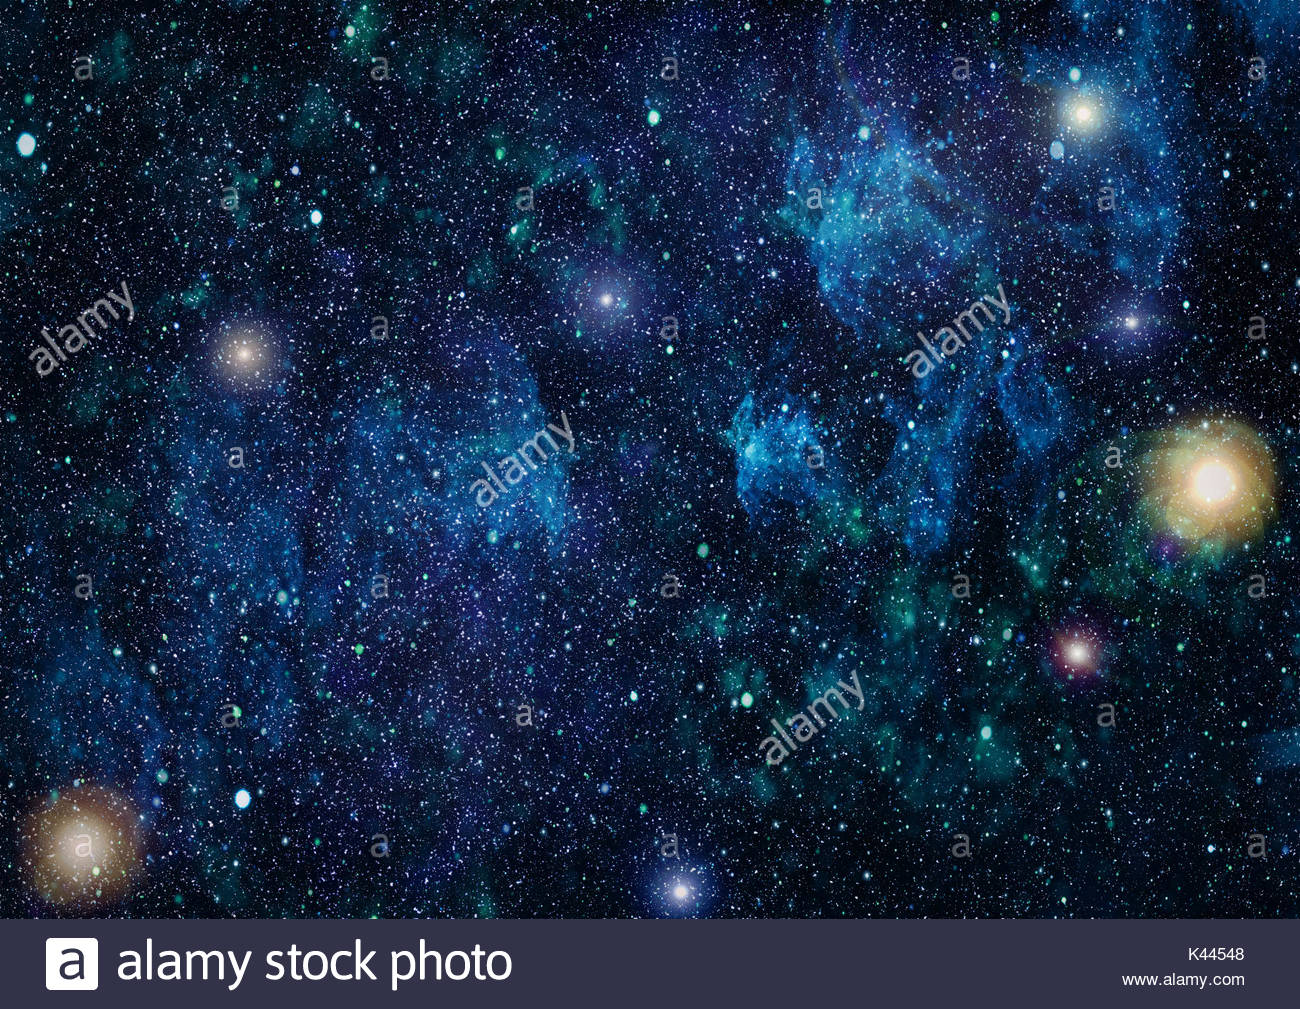 Colorful Starry Night Sky Outer Space background Stock Photo 1300x1009